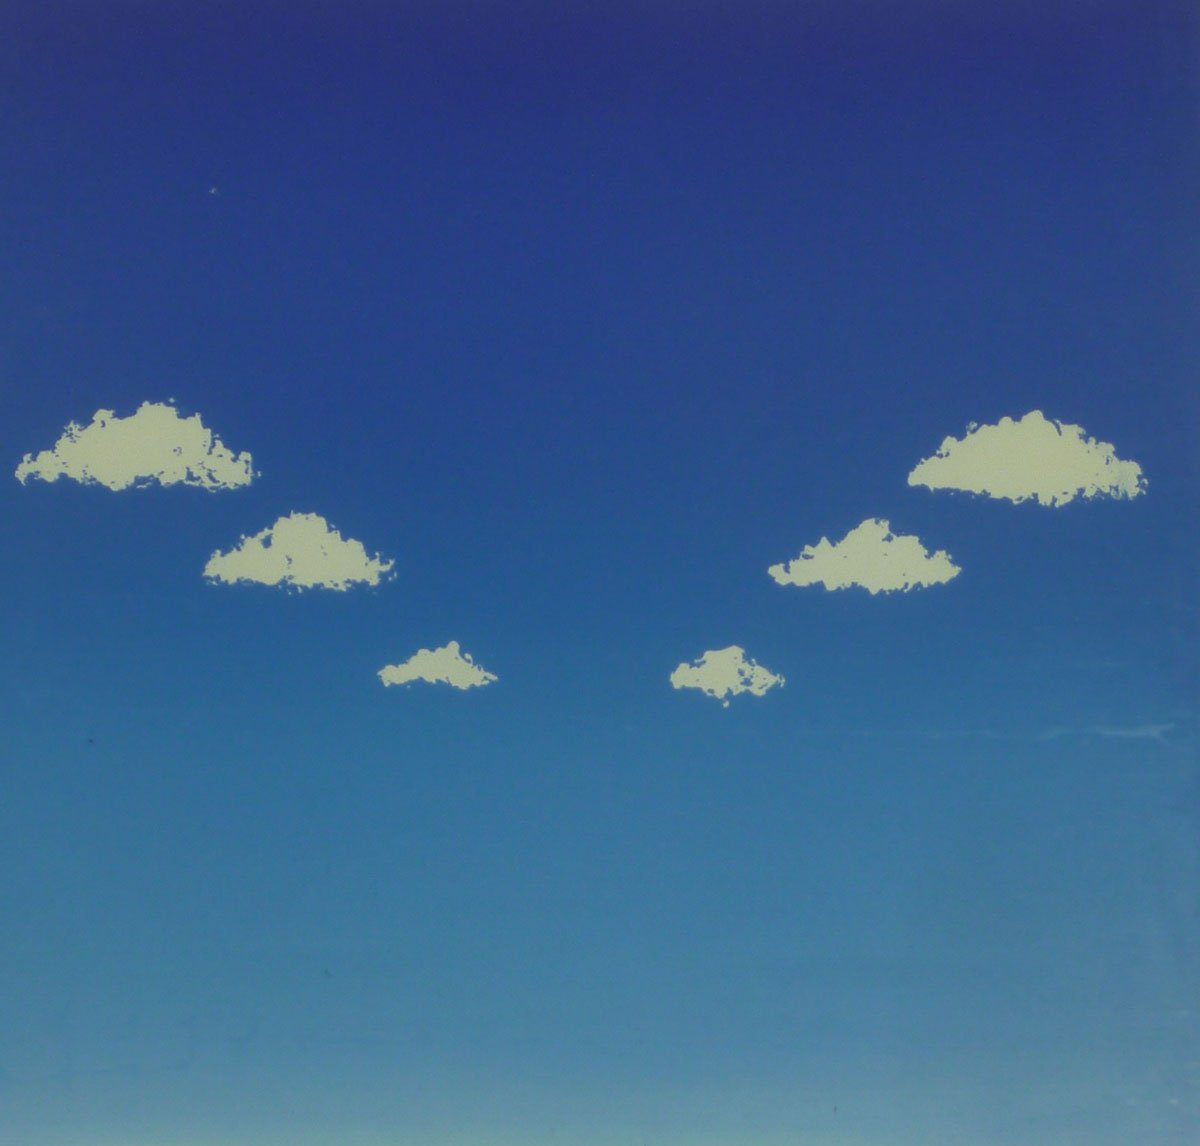 Prints-B-6-clouds-(bright-blue)-2019-08-12-12.53.41-2